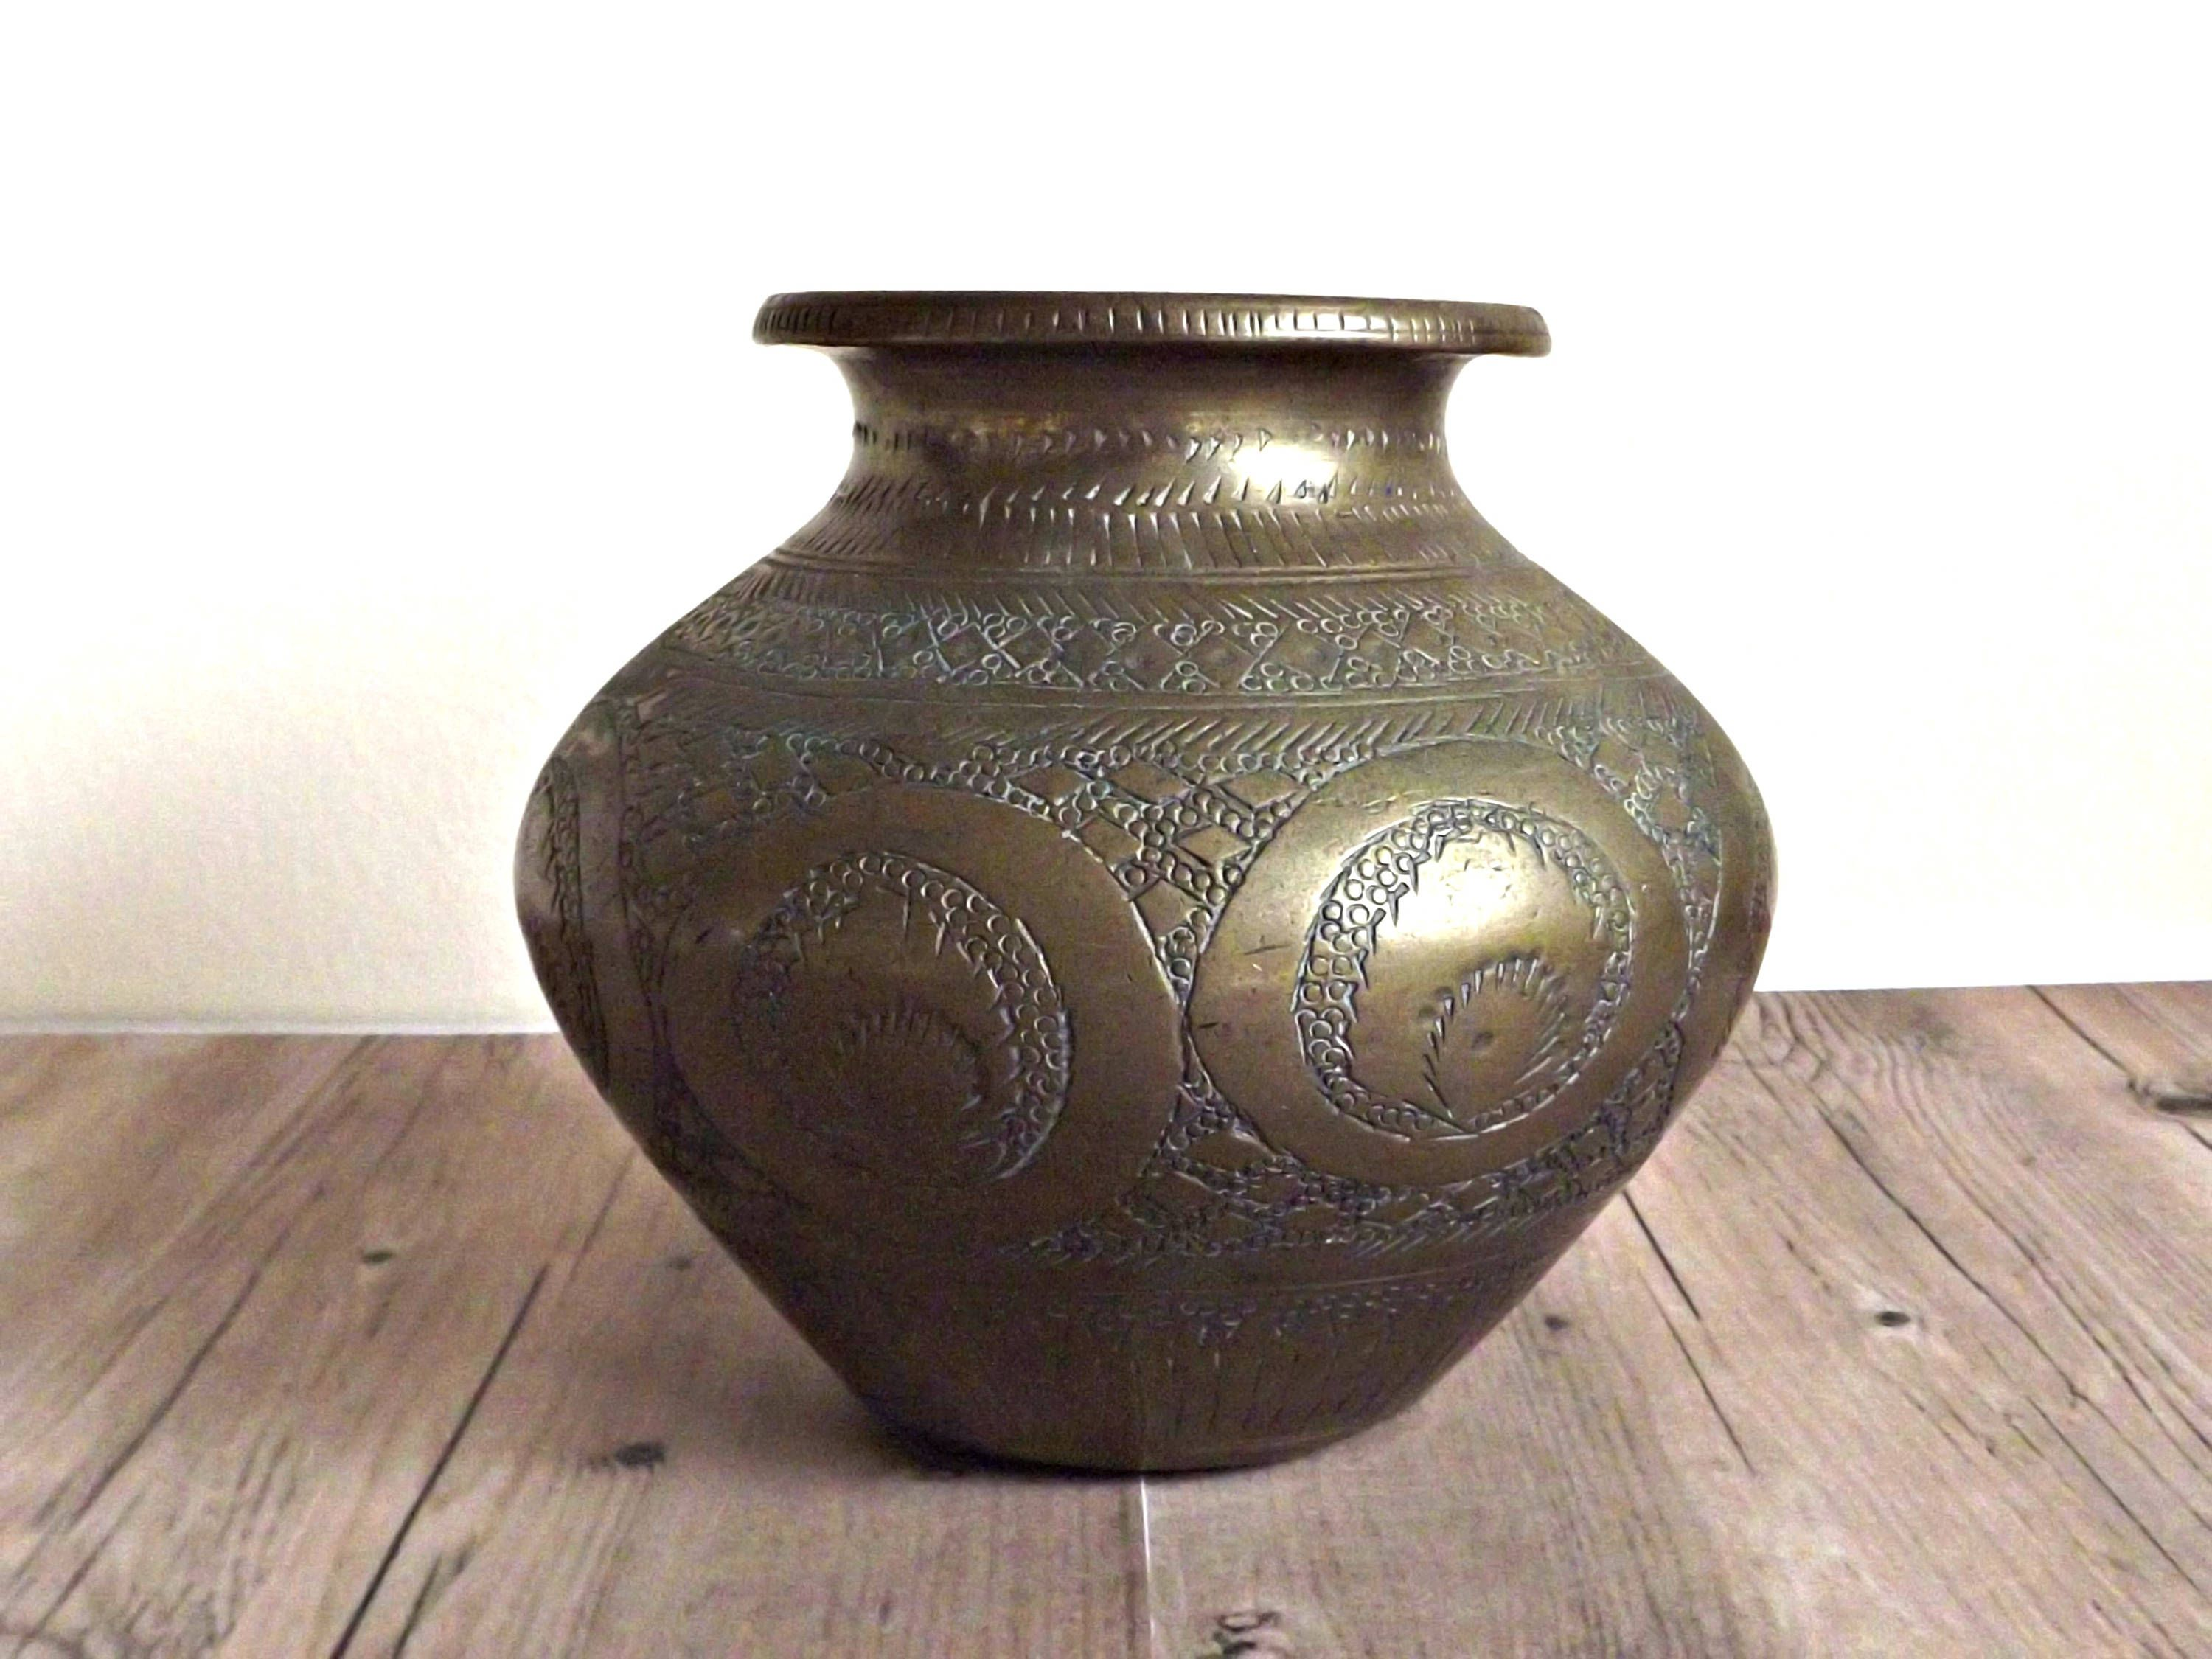 Vintage brass vase etched brass bohemian decor retro chic decor vintage brass vase etched brass bohemian decor retro chic decor solid brass reviewsmspy